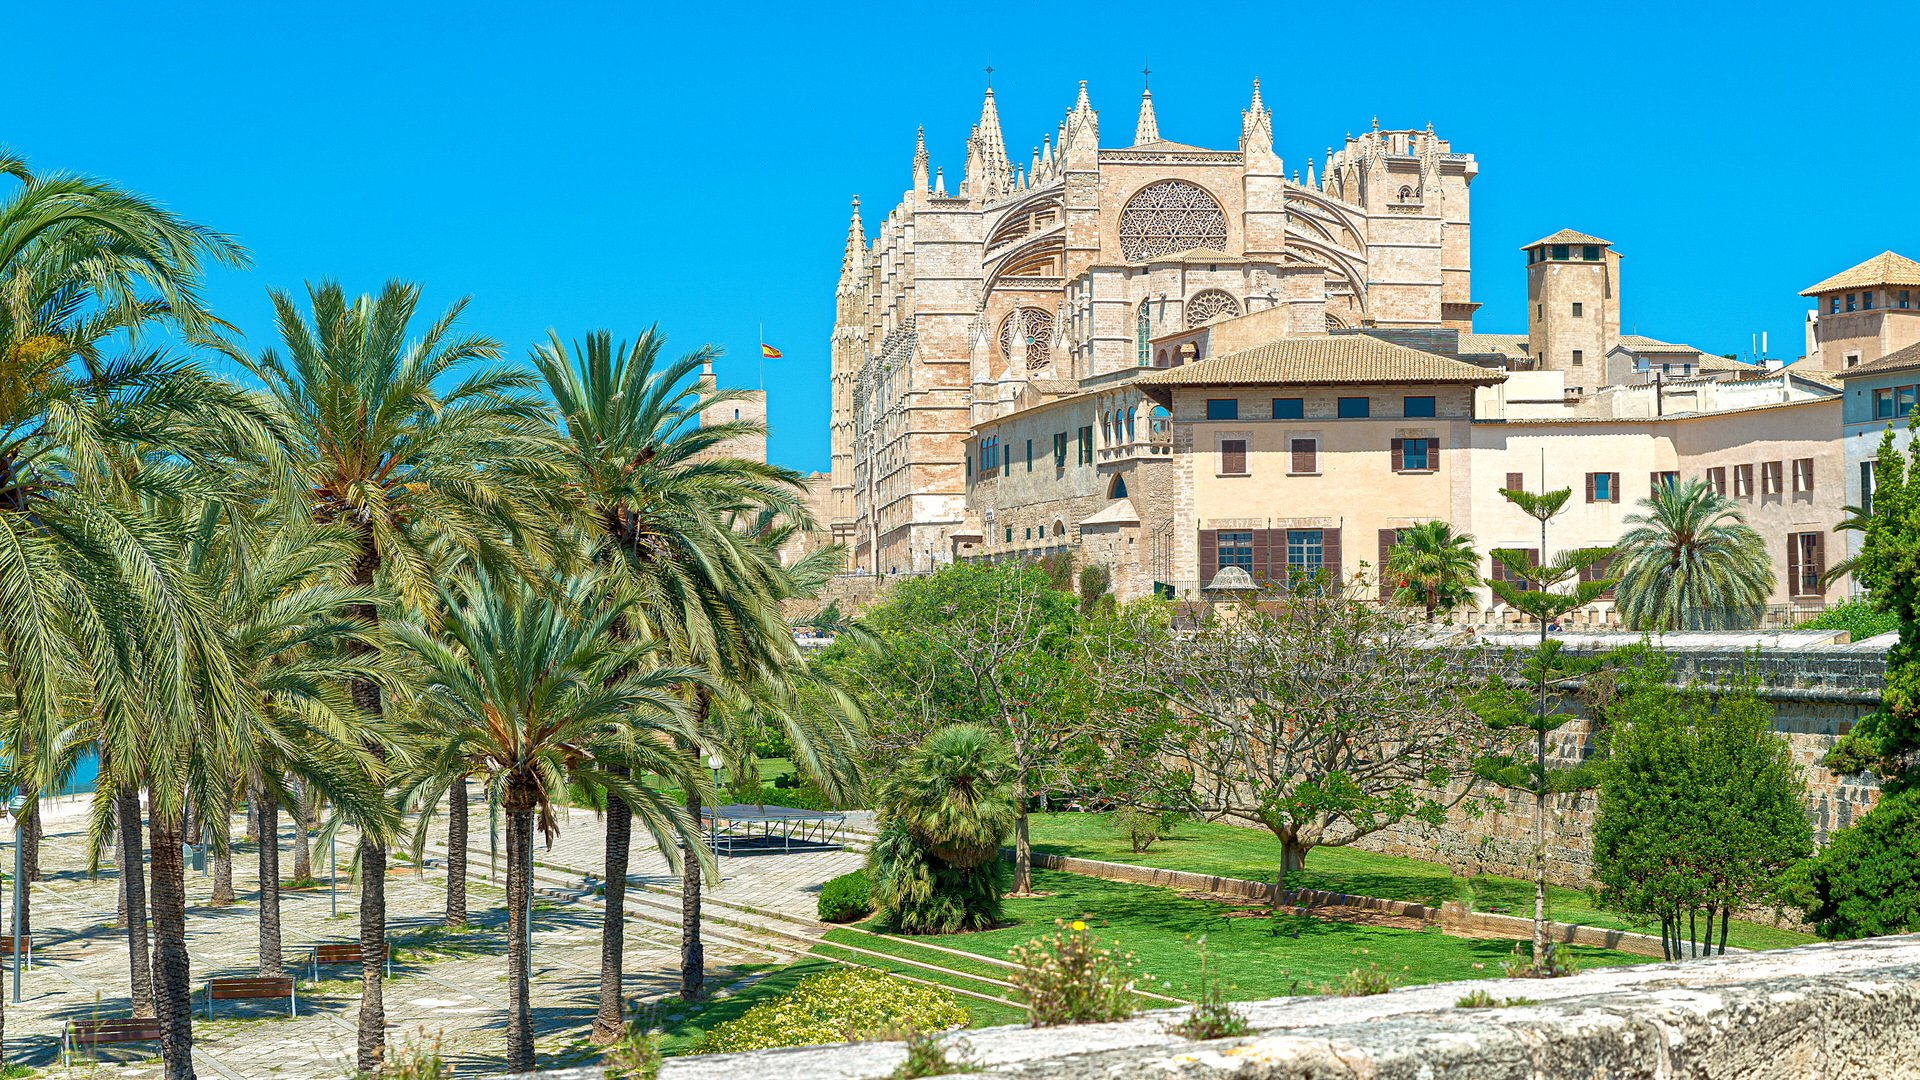 Travel to Mallorca will be possible again from the end of June?